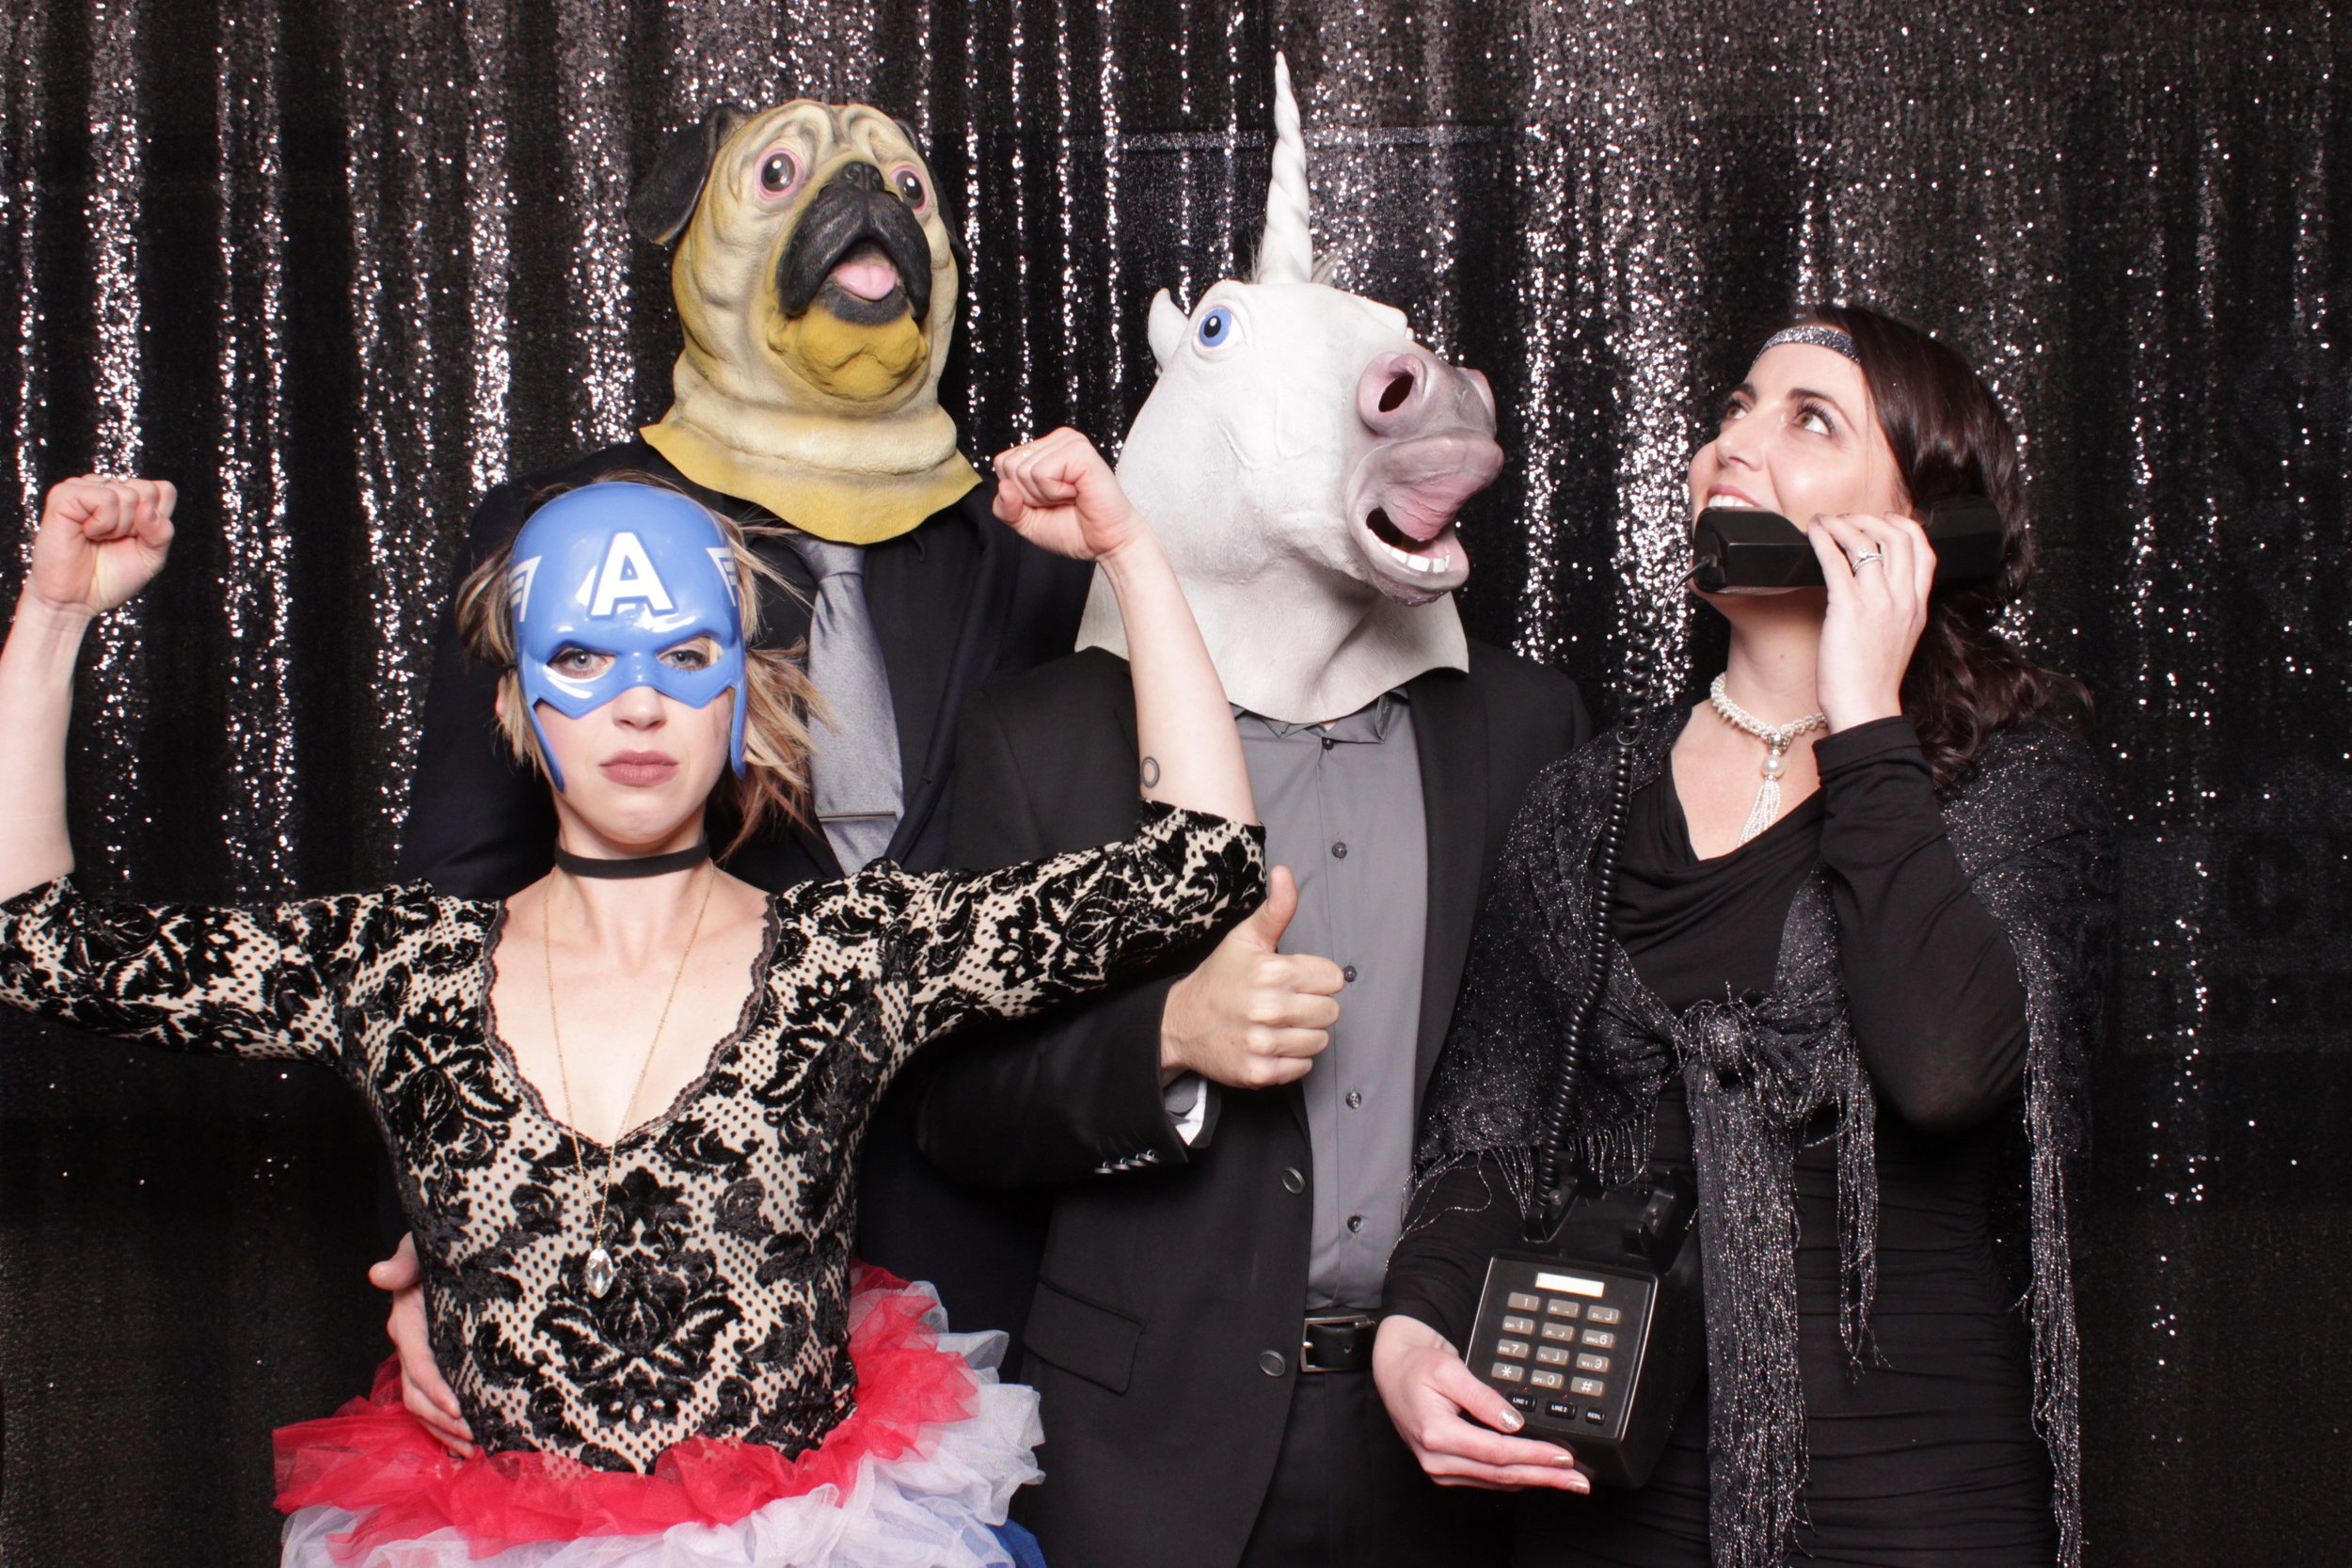 fun-chico-trebooth-photo-booth-rental.jpg